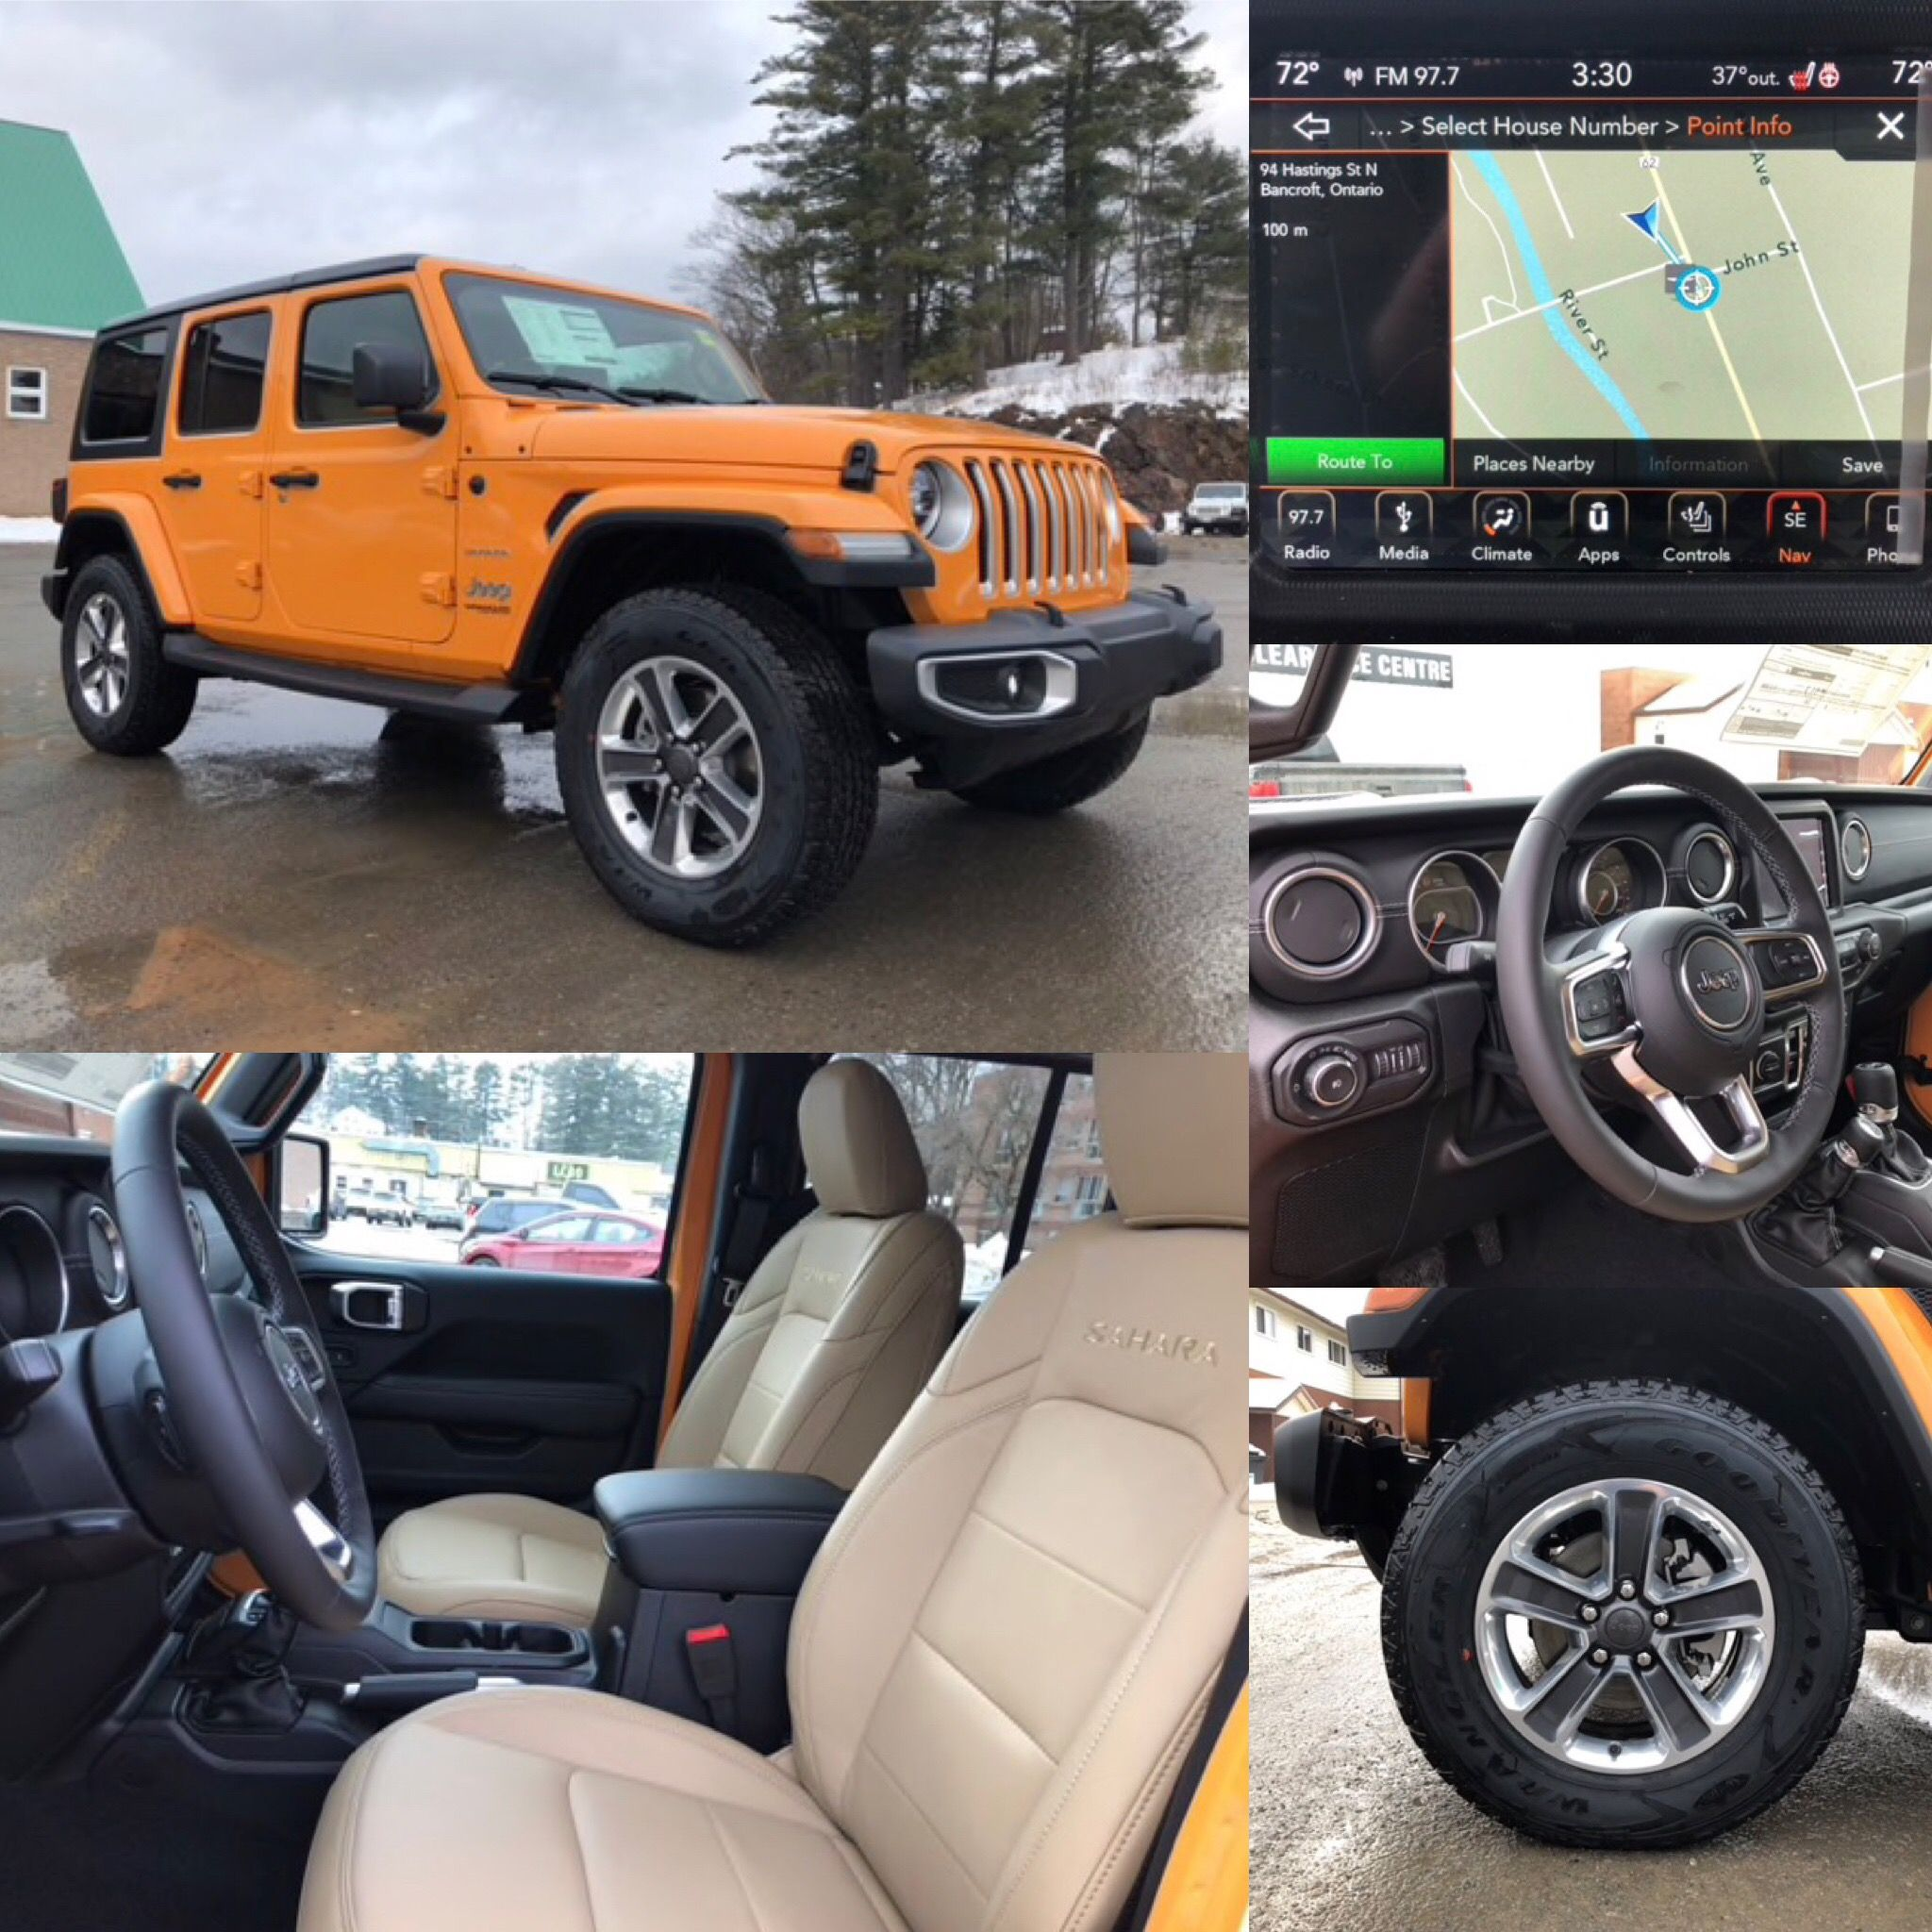 2018 Nacho Jeep Wrangler Unlimited Sahara 4x4 Leather Htd Seats And Steering Nav 2018 Jeep Wrangler Unlimited Jeep Wrangler Jeep Wrangler Unlimited Sahara